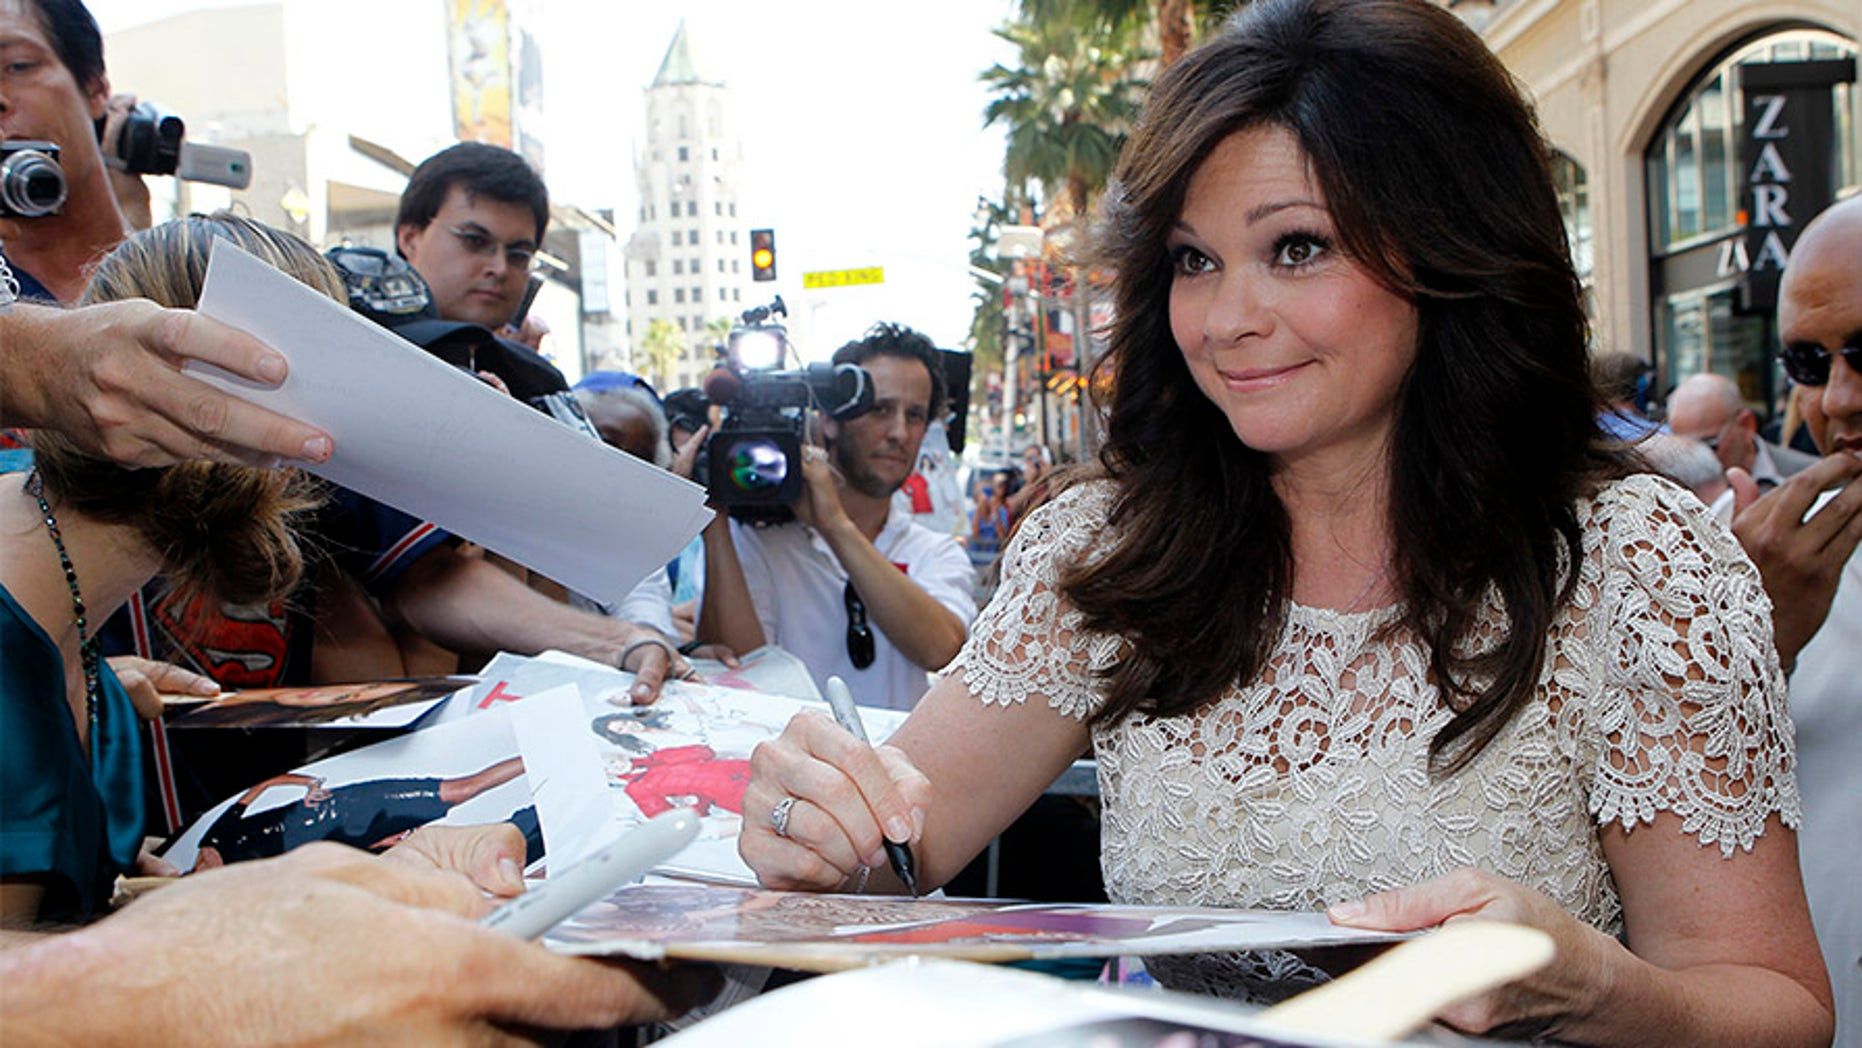 Actress Valerie Bertinelli signs autographs after unveiling her star on the Walk of Fame in Hollywood, California August 22, 2012. REUTERS/Mario Anzuoni (UNITED STATES - Tags: ENTERTAINMENT PROFILE) - GM1E88N0DMV01